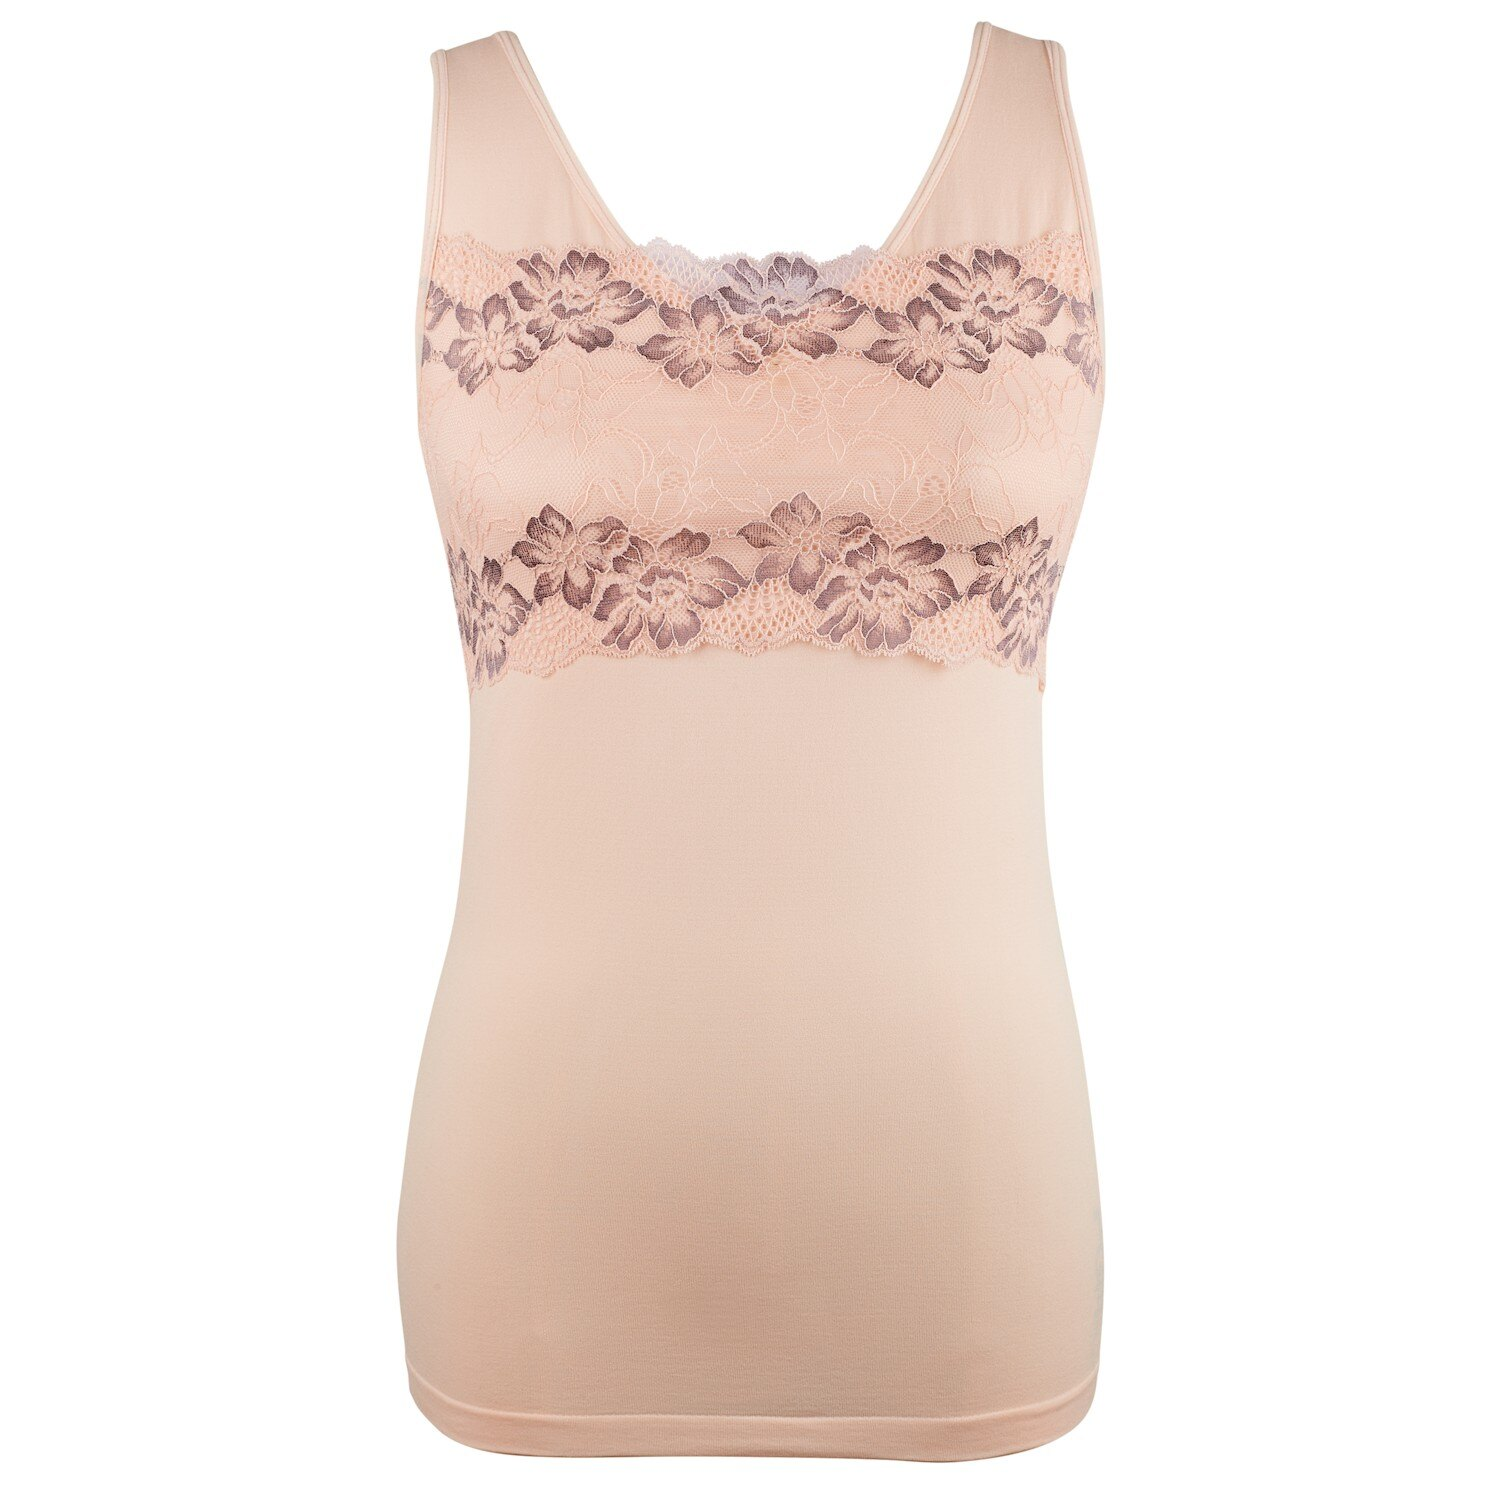 dcbf2d6837 Ahh By Rhonda Shear Women s Lace Overlay Seamless Shaping Tank with Shelf  Bra - Pink